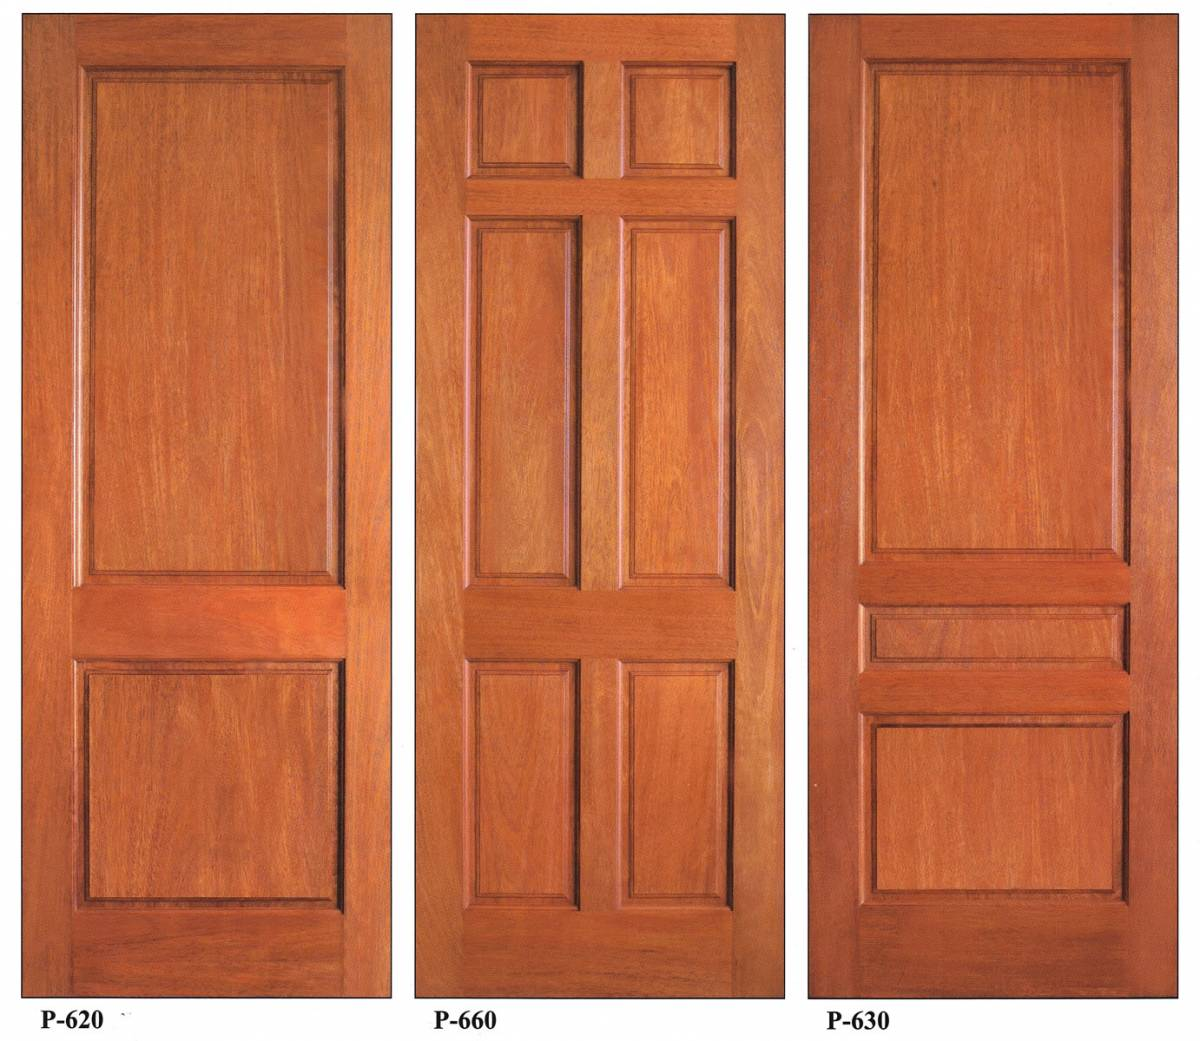 Wooden doors wooden doors interior for Hardwood interior doors